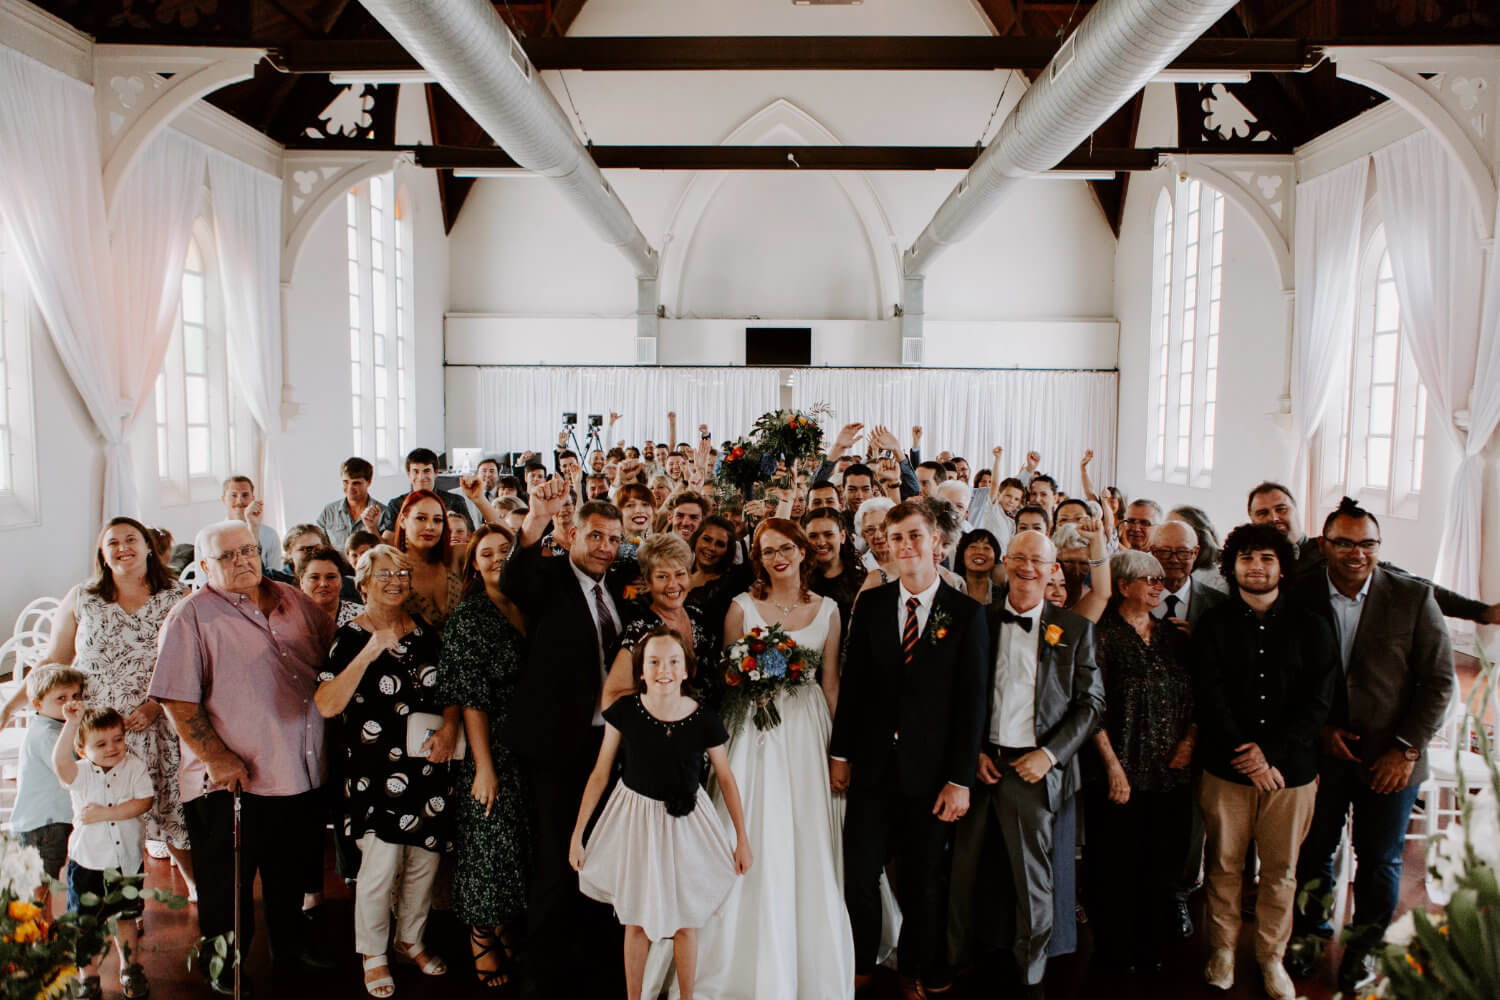 How to Make Family-Photos Easier at Your Wedding Best Wedding Day Tips and Tricks 3